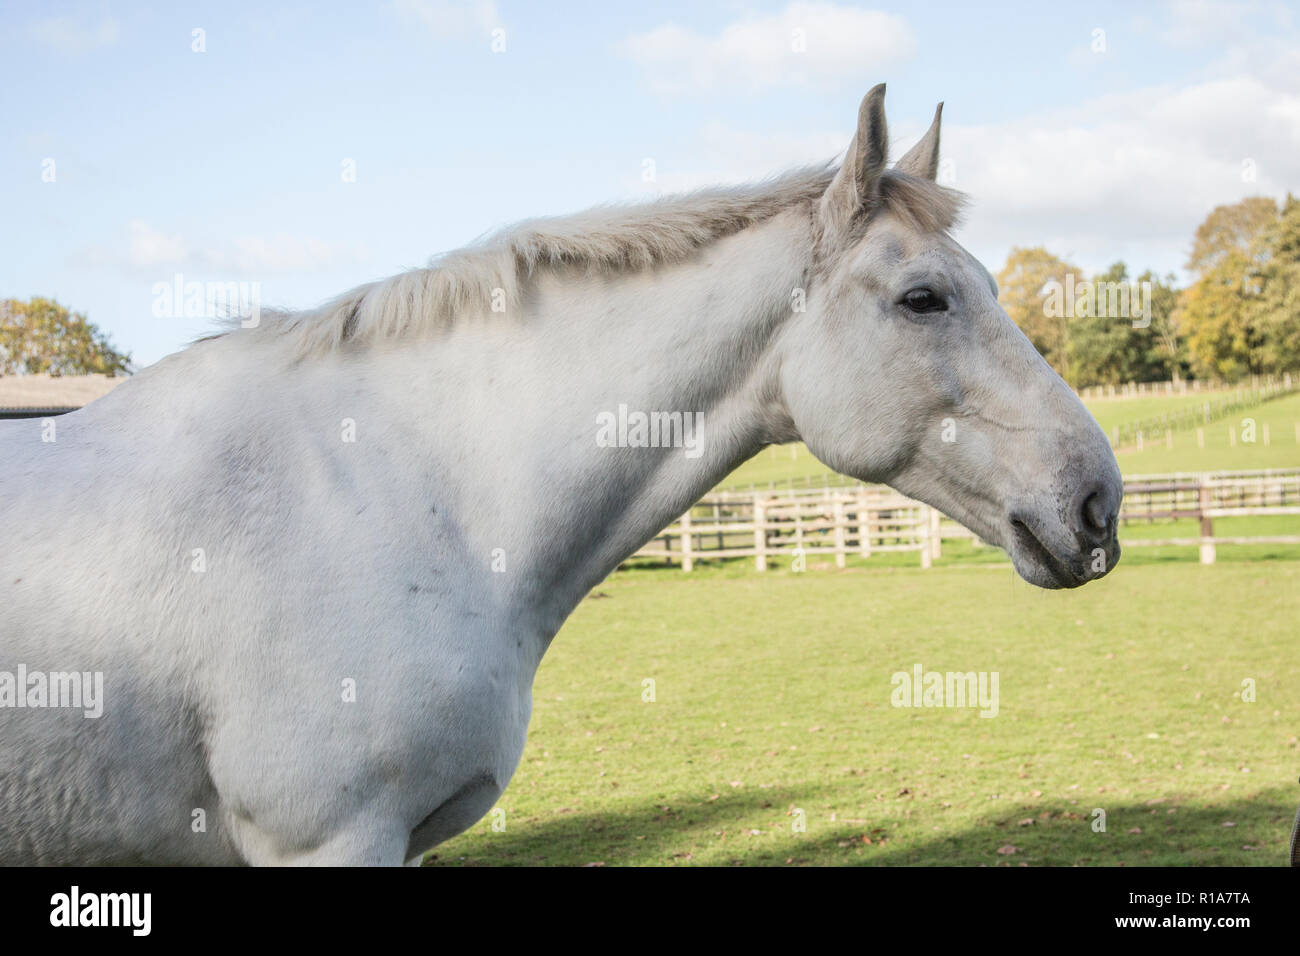 Horses Head Close Up White Horse Outside On A Sunny Day In Worcestershire England Stock Photo Alamy